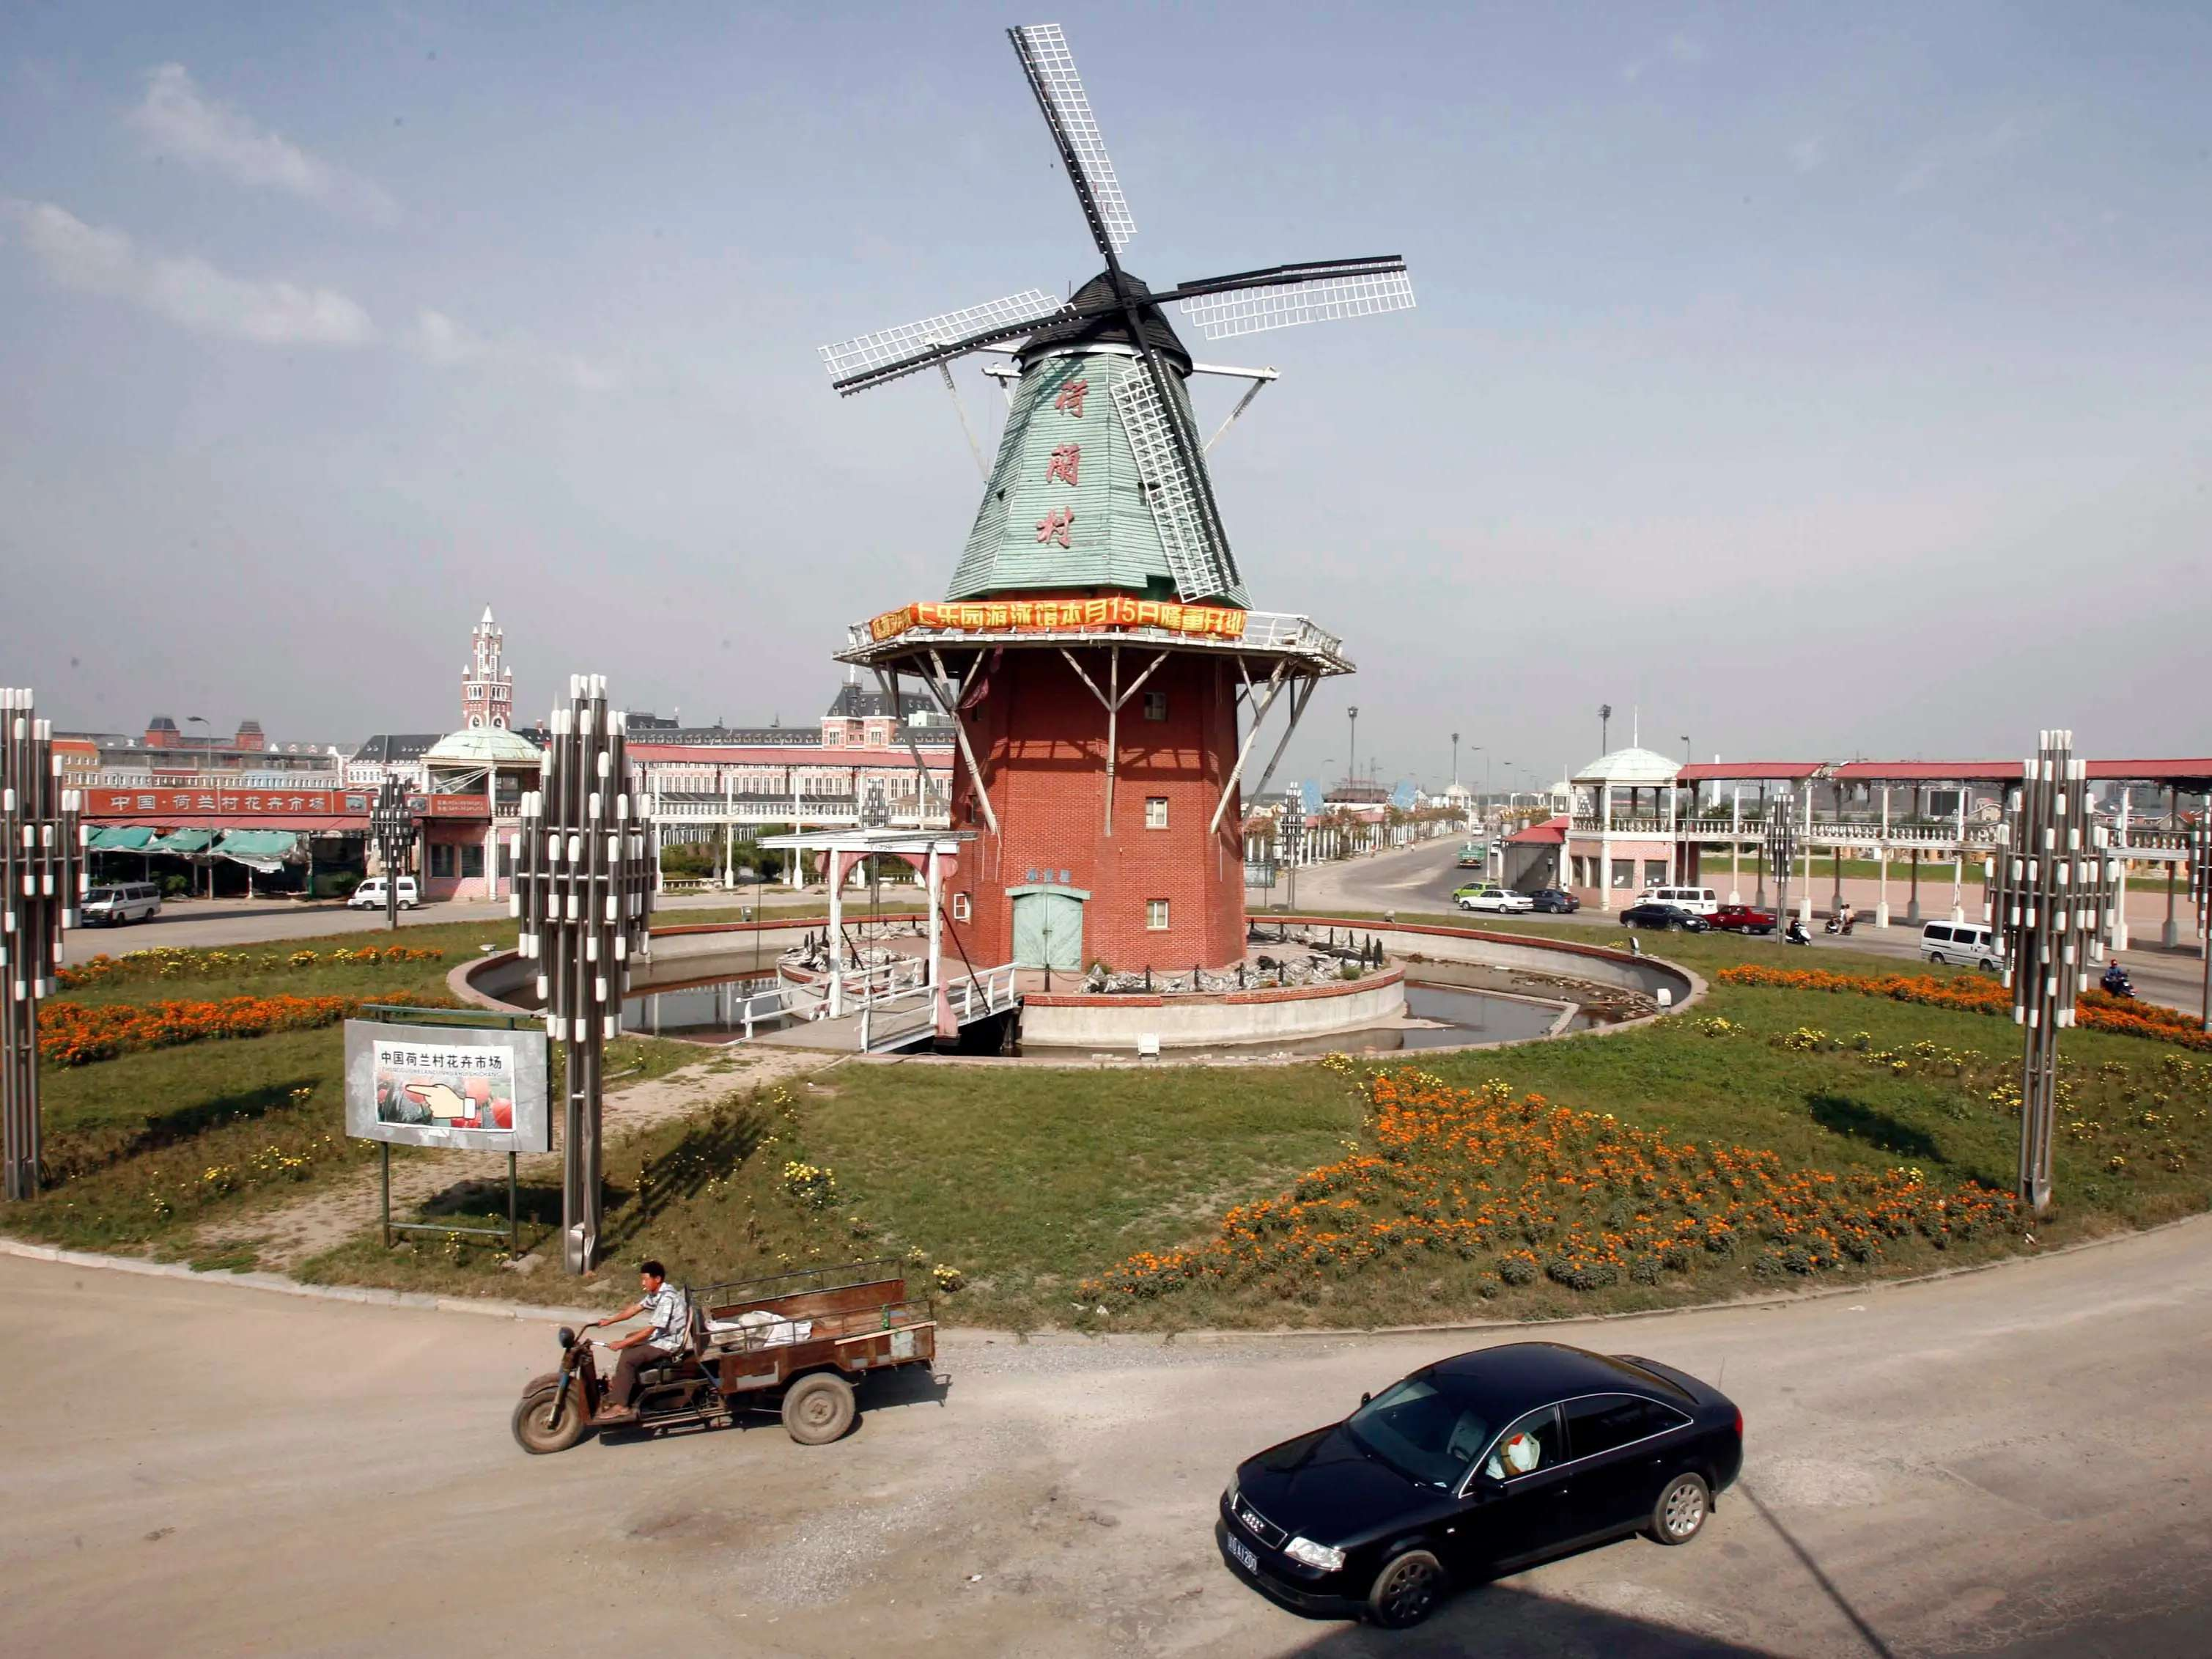 Also known as Pudong's Nederland, Holland Town is a pastichevillage made of Dutch stereotypespulled from Amsterdam and the Kattenbroek neighborhood of Amersfoort, complete with canals and windmills. Some buildings are exact copies of those found in the Netherlands, like the Netherlands Maritime Museum and the Bijenkorf department store in Amsterdam.